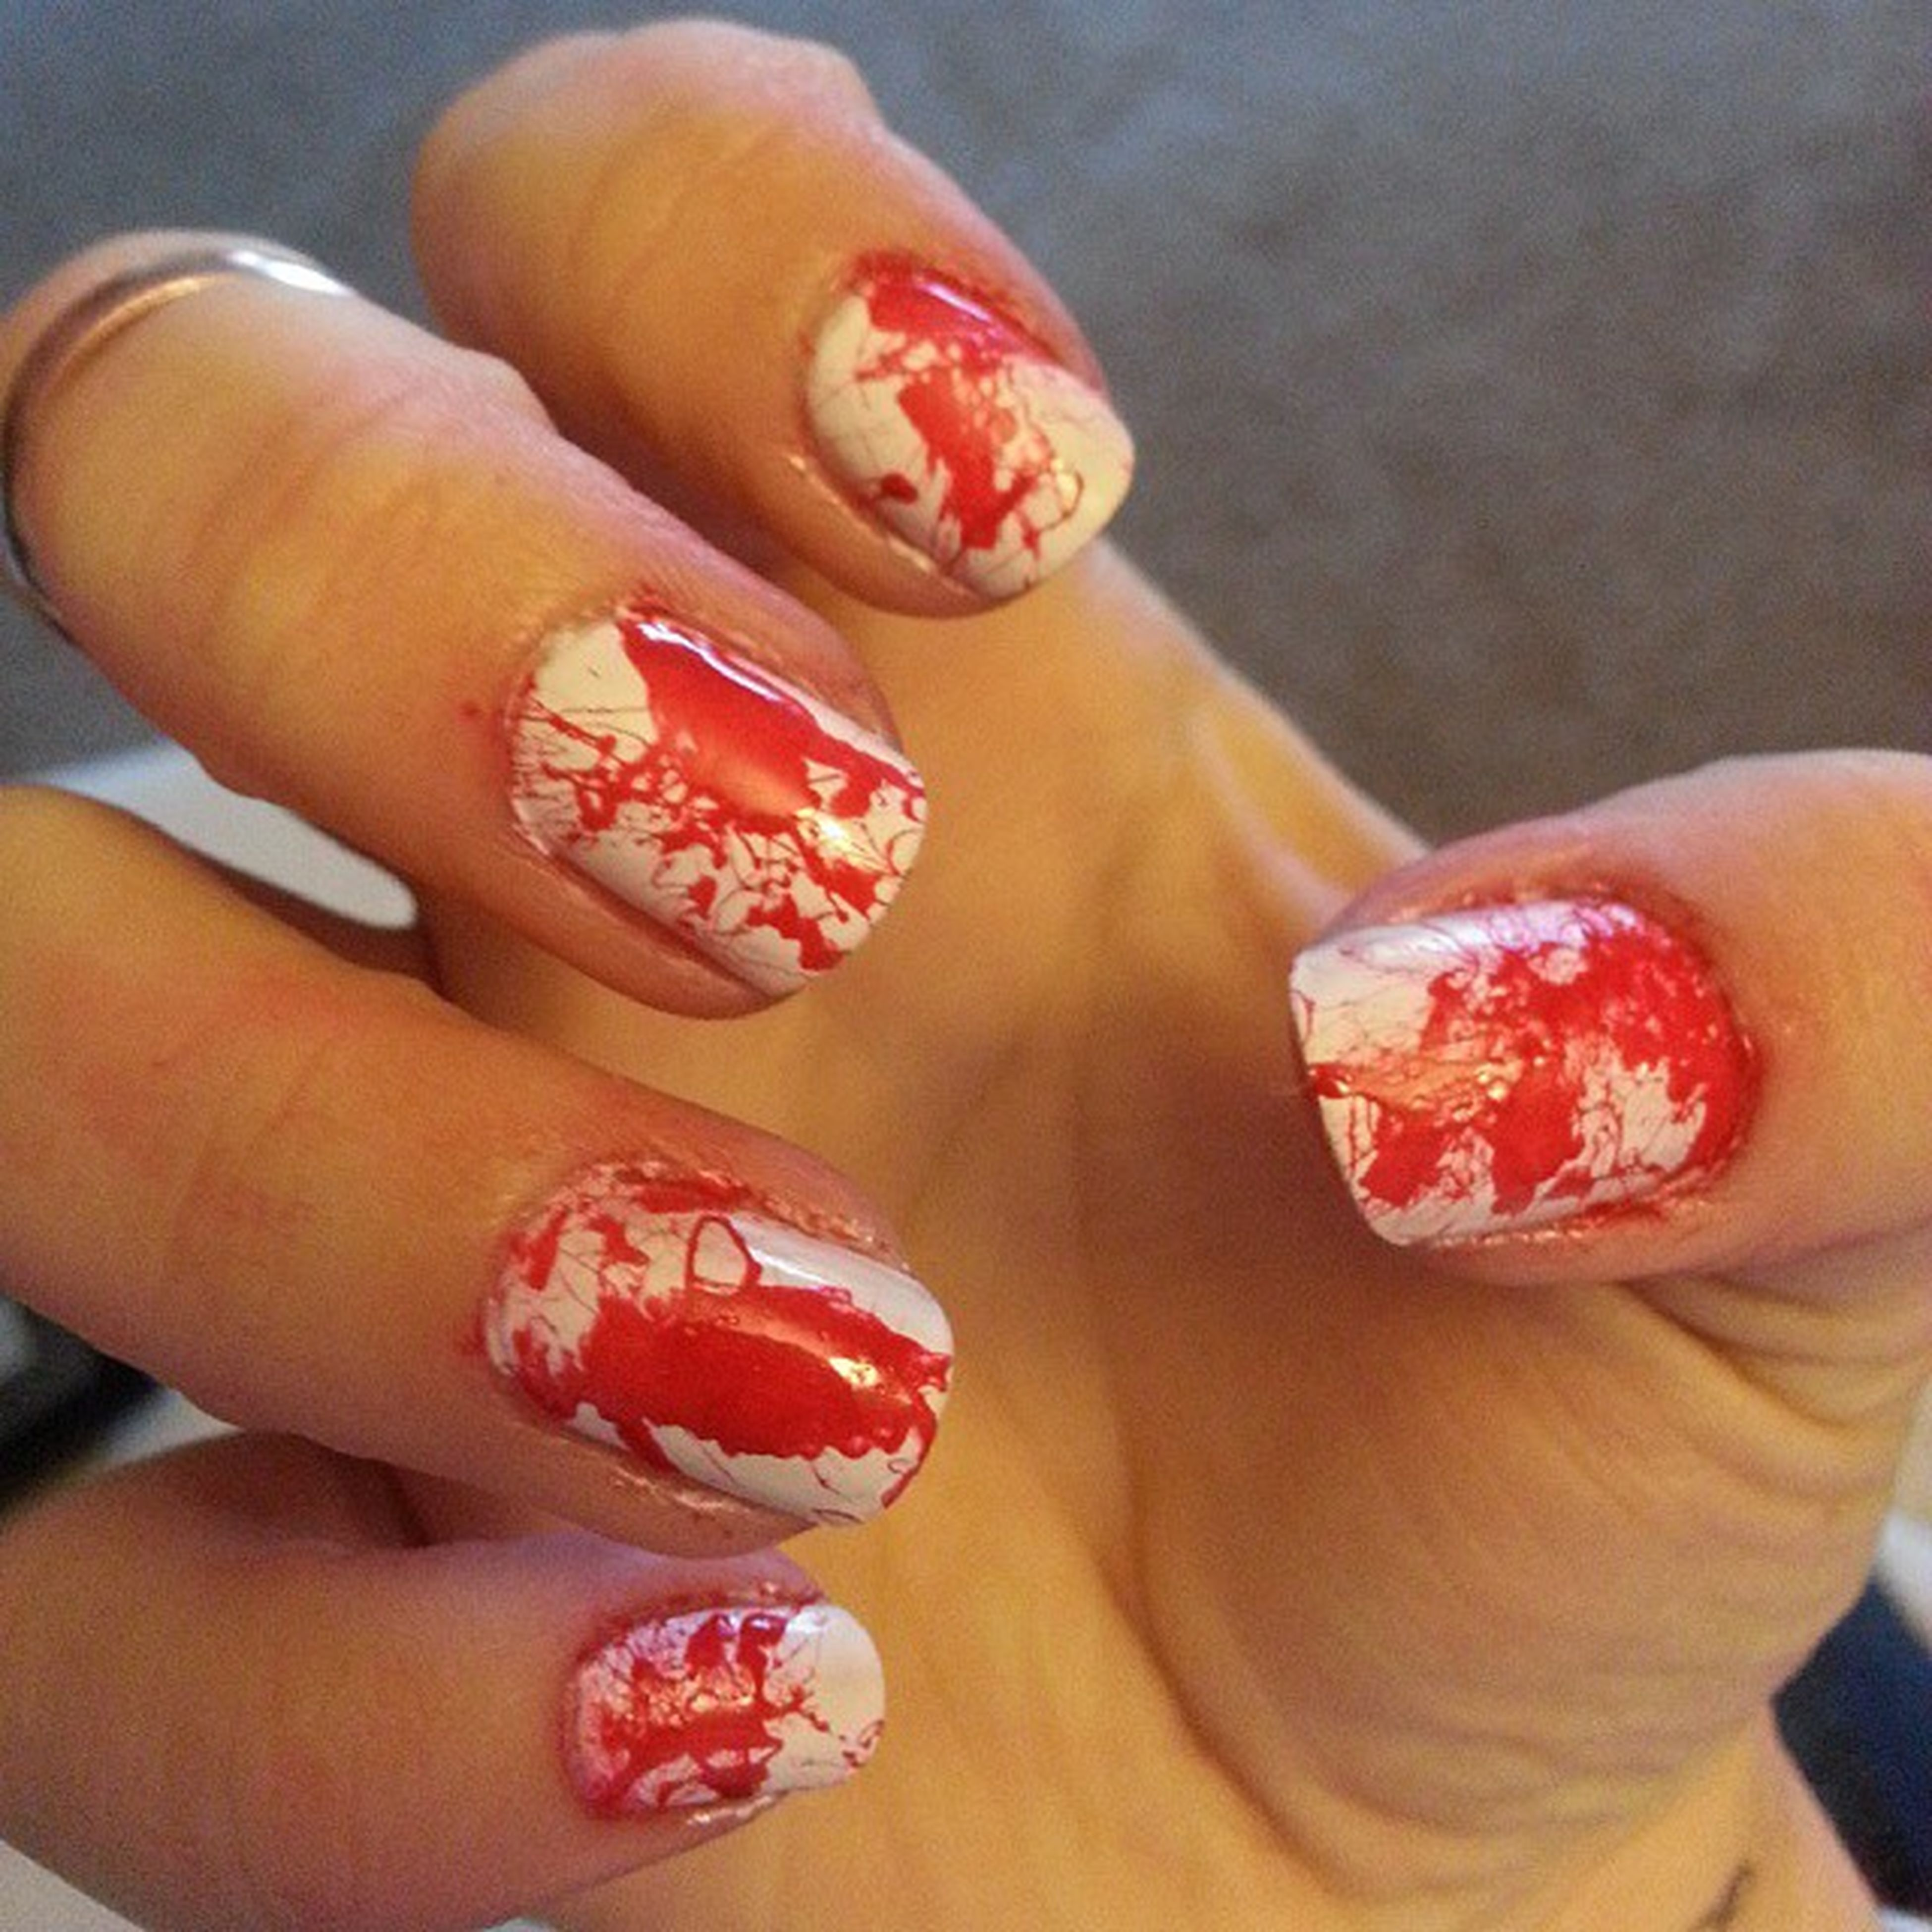 Blood spatter for Halloween. Juleptrickortreat Nails Nail Art My Nails